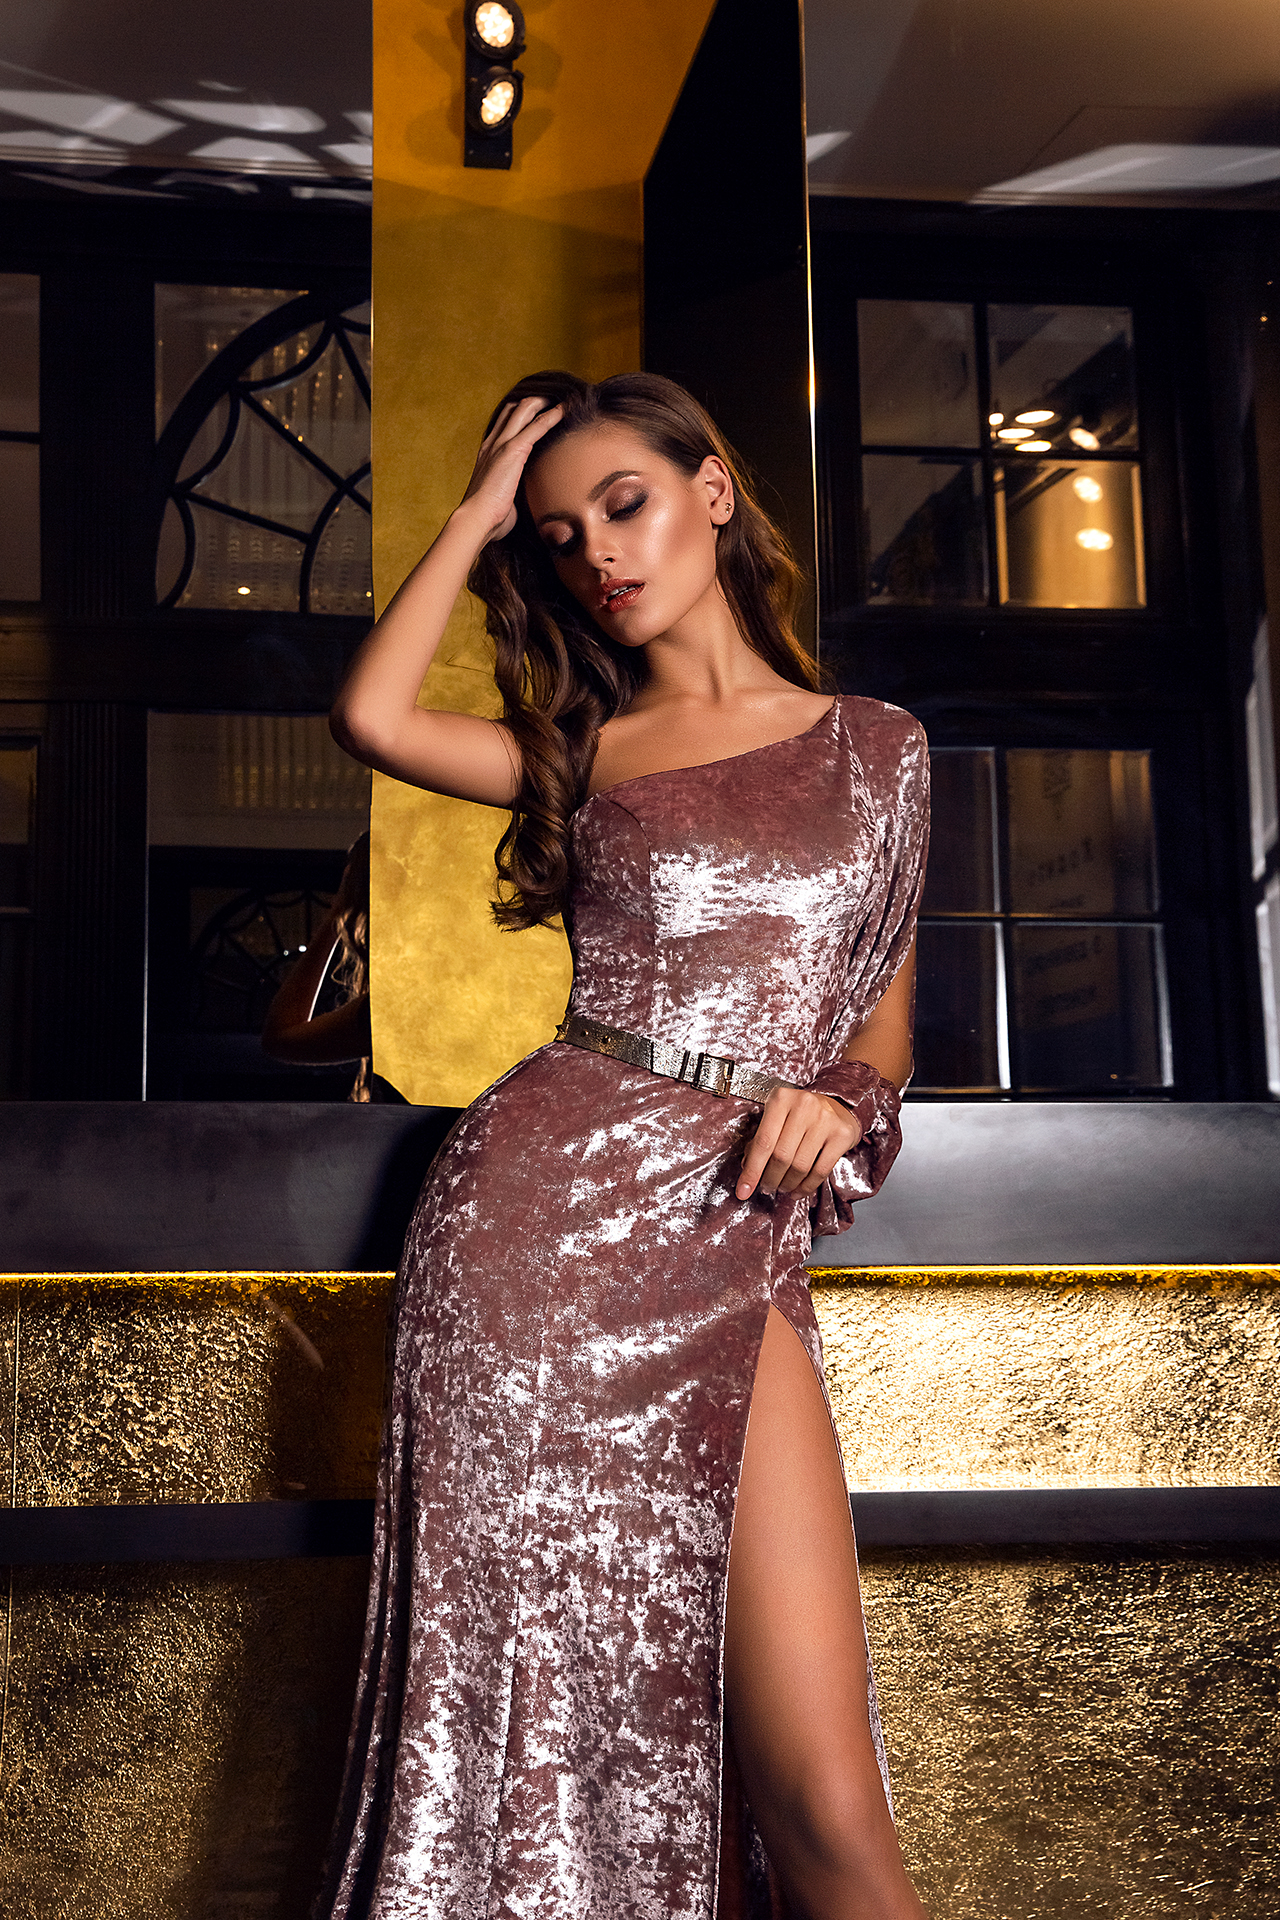 Evening Dresses 1480 Silhouette  Sheath  Color  Cappuccino  Sleeves  One Shoulder  Long Sleeves - foto 4